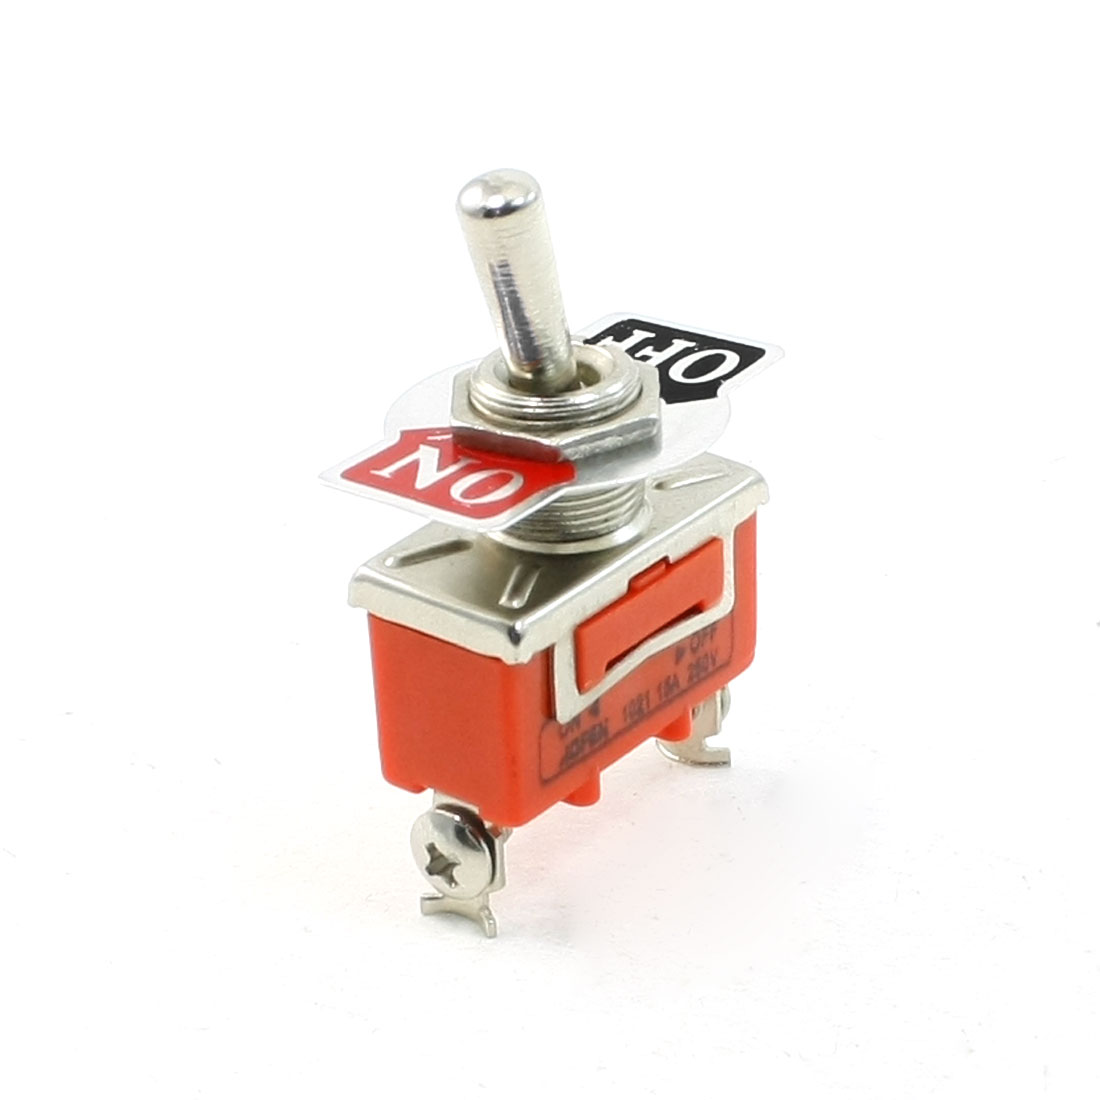 AC 250V 15A ON/OFF SPST 2 Position 2 Terminals Toggle Switch